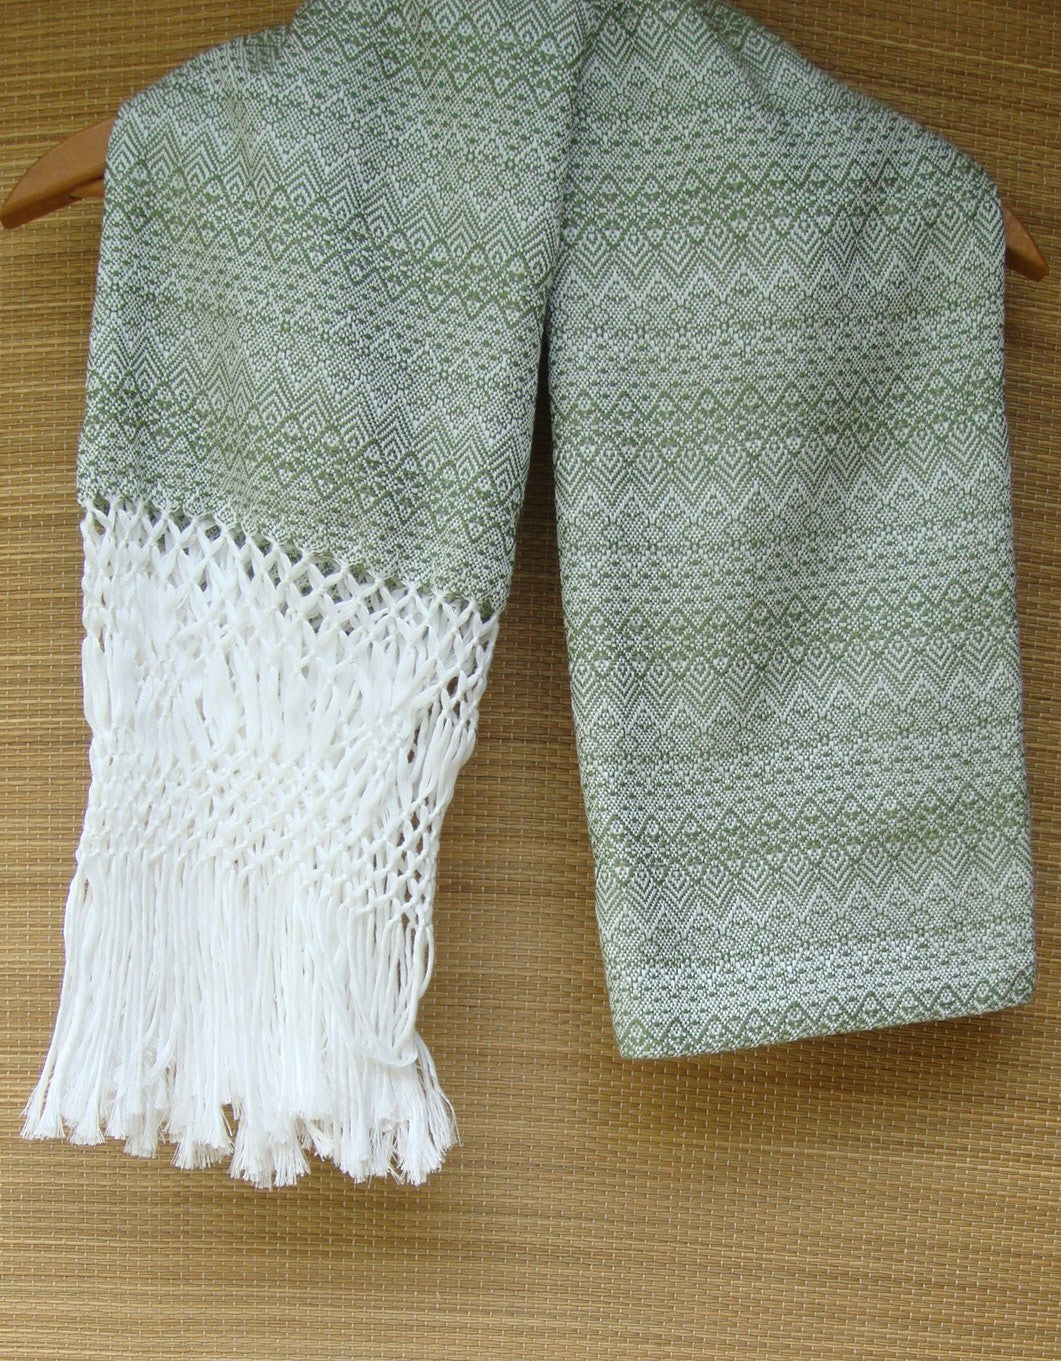 Light Green Rebozo Shawl with Fringes Embroidered Cotton